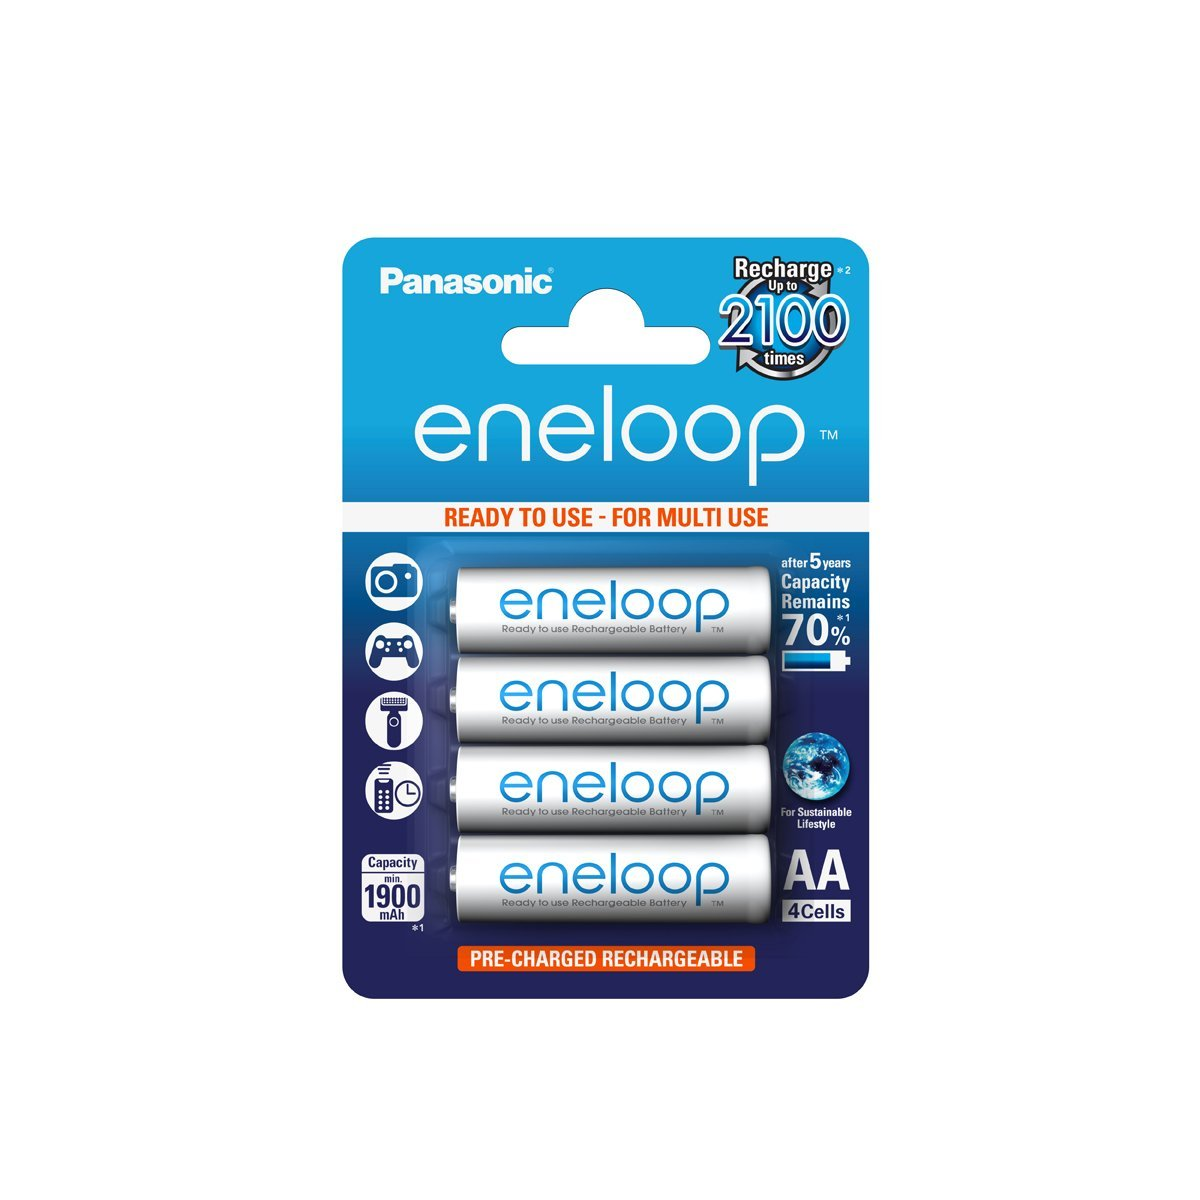 Panasonic Eneloop AA LR6 MN1500 Ni-Mh 1900mah Rechargeable Battery - 4 Pack lowest price